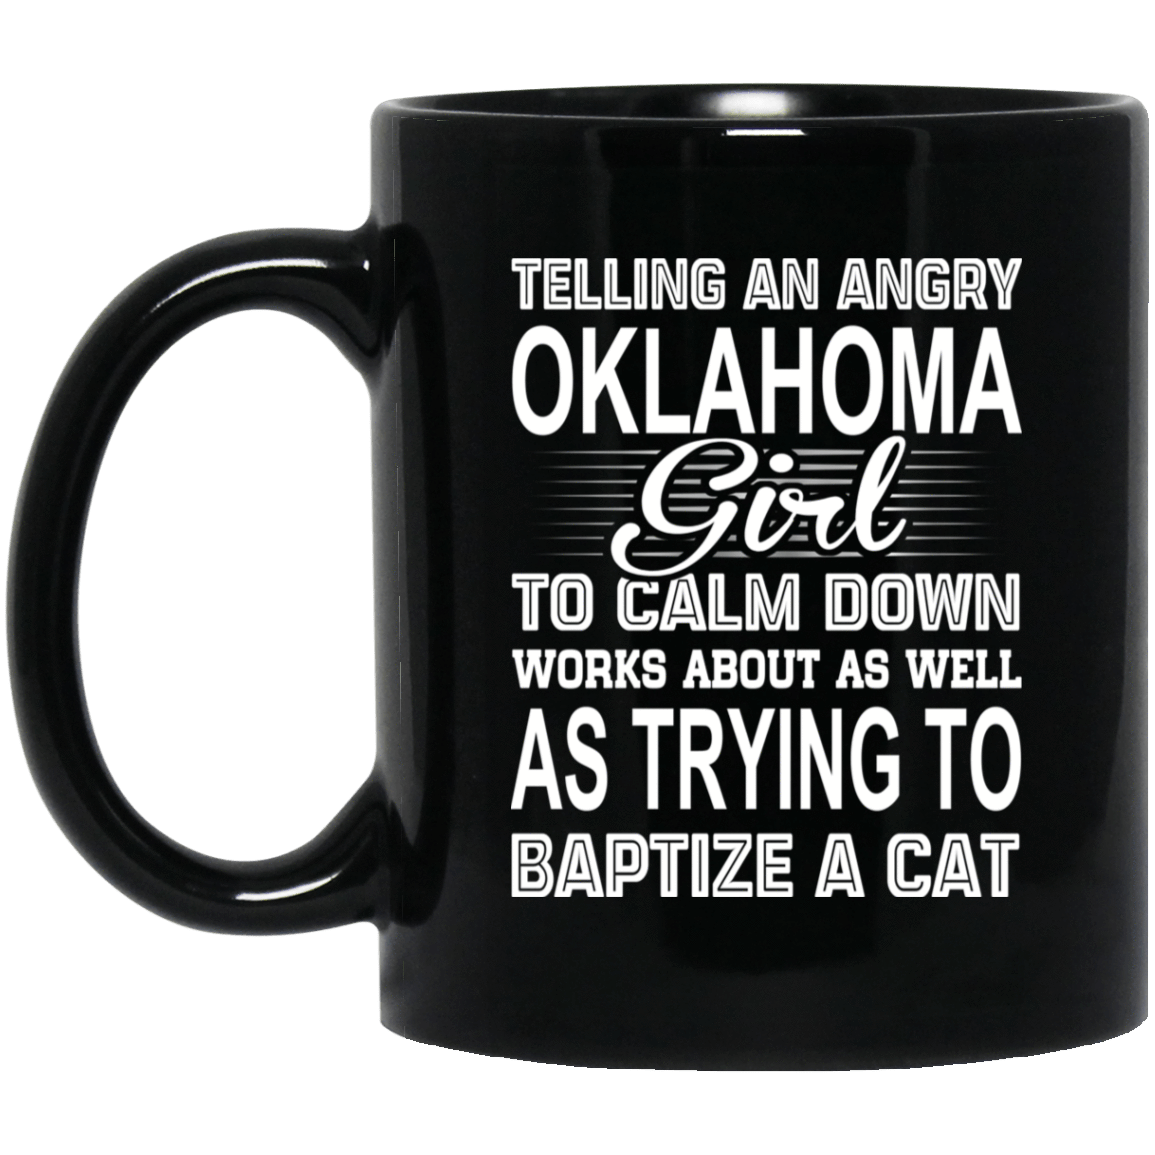 Telling An Angry Oklahoma Girl To Calm Down Works About As Well As Trying To Baptize A Cat Mug 1065-10181-76151932-49307 - Tee Ript